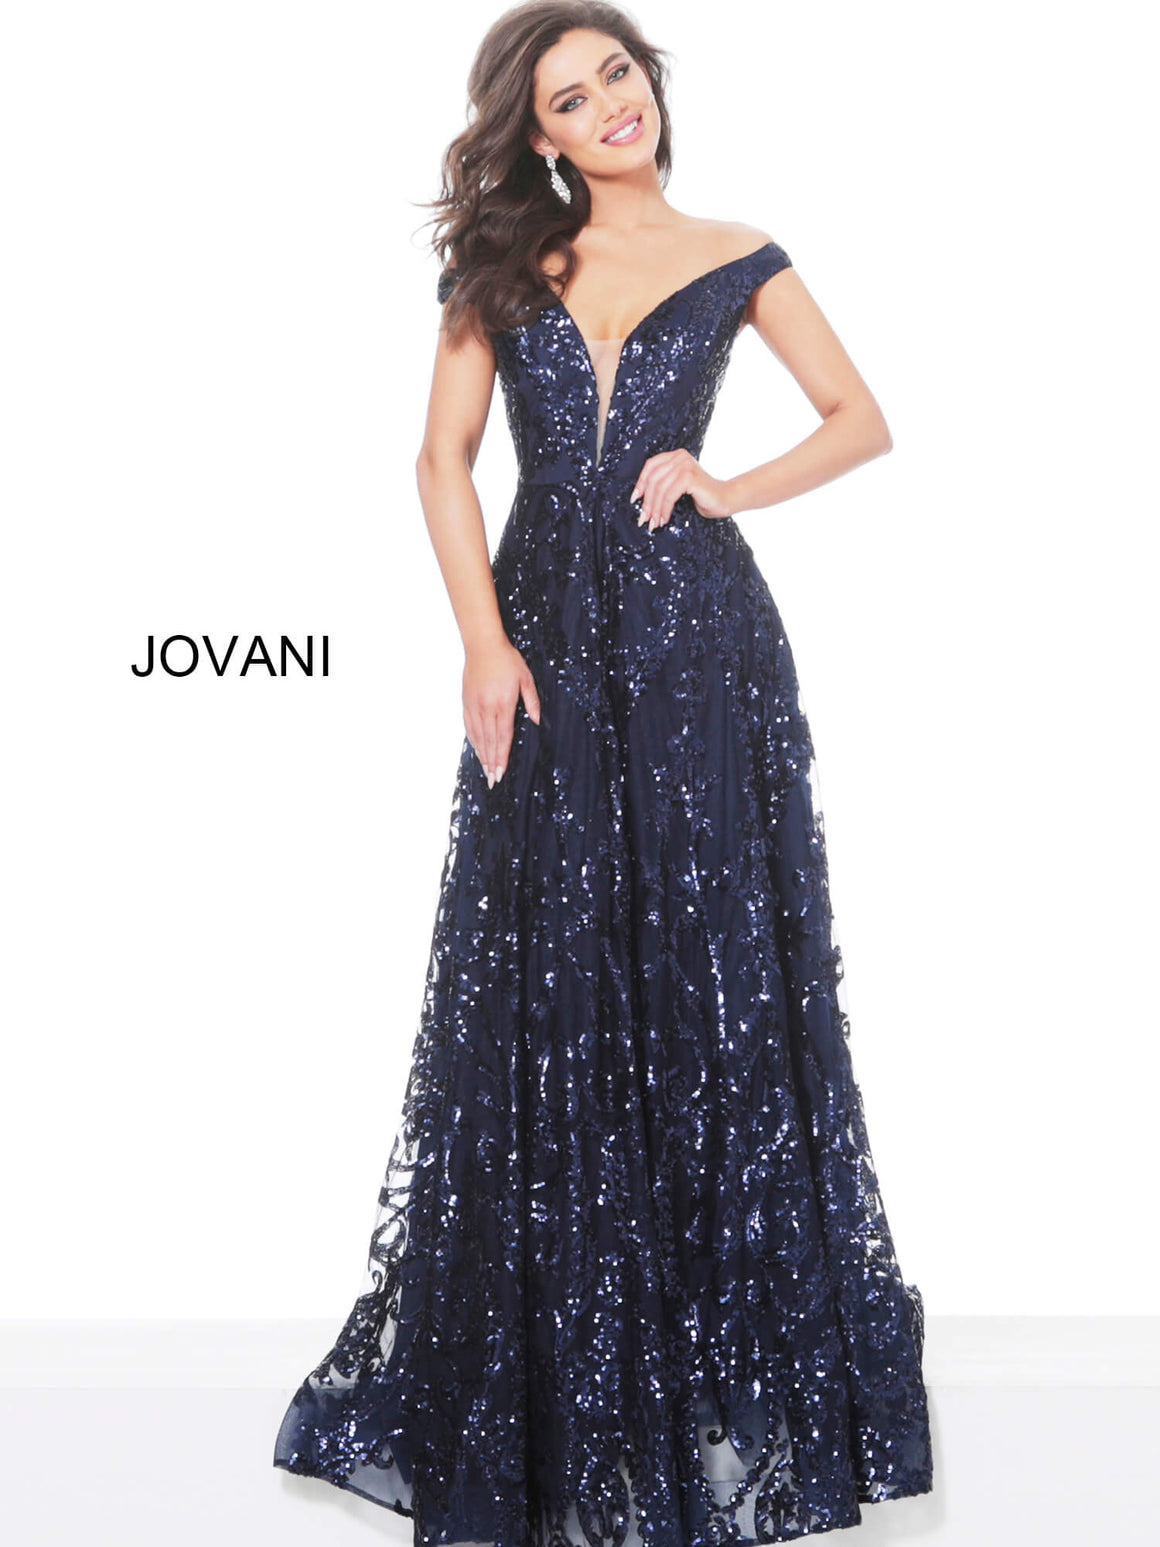 Jovani 02932 Navy Off the Shoulder Sequin Evening Dress